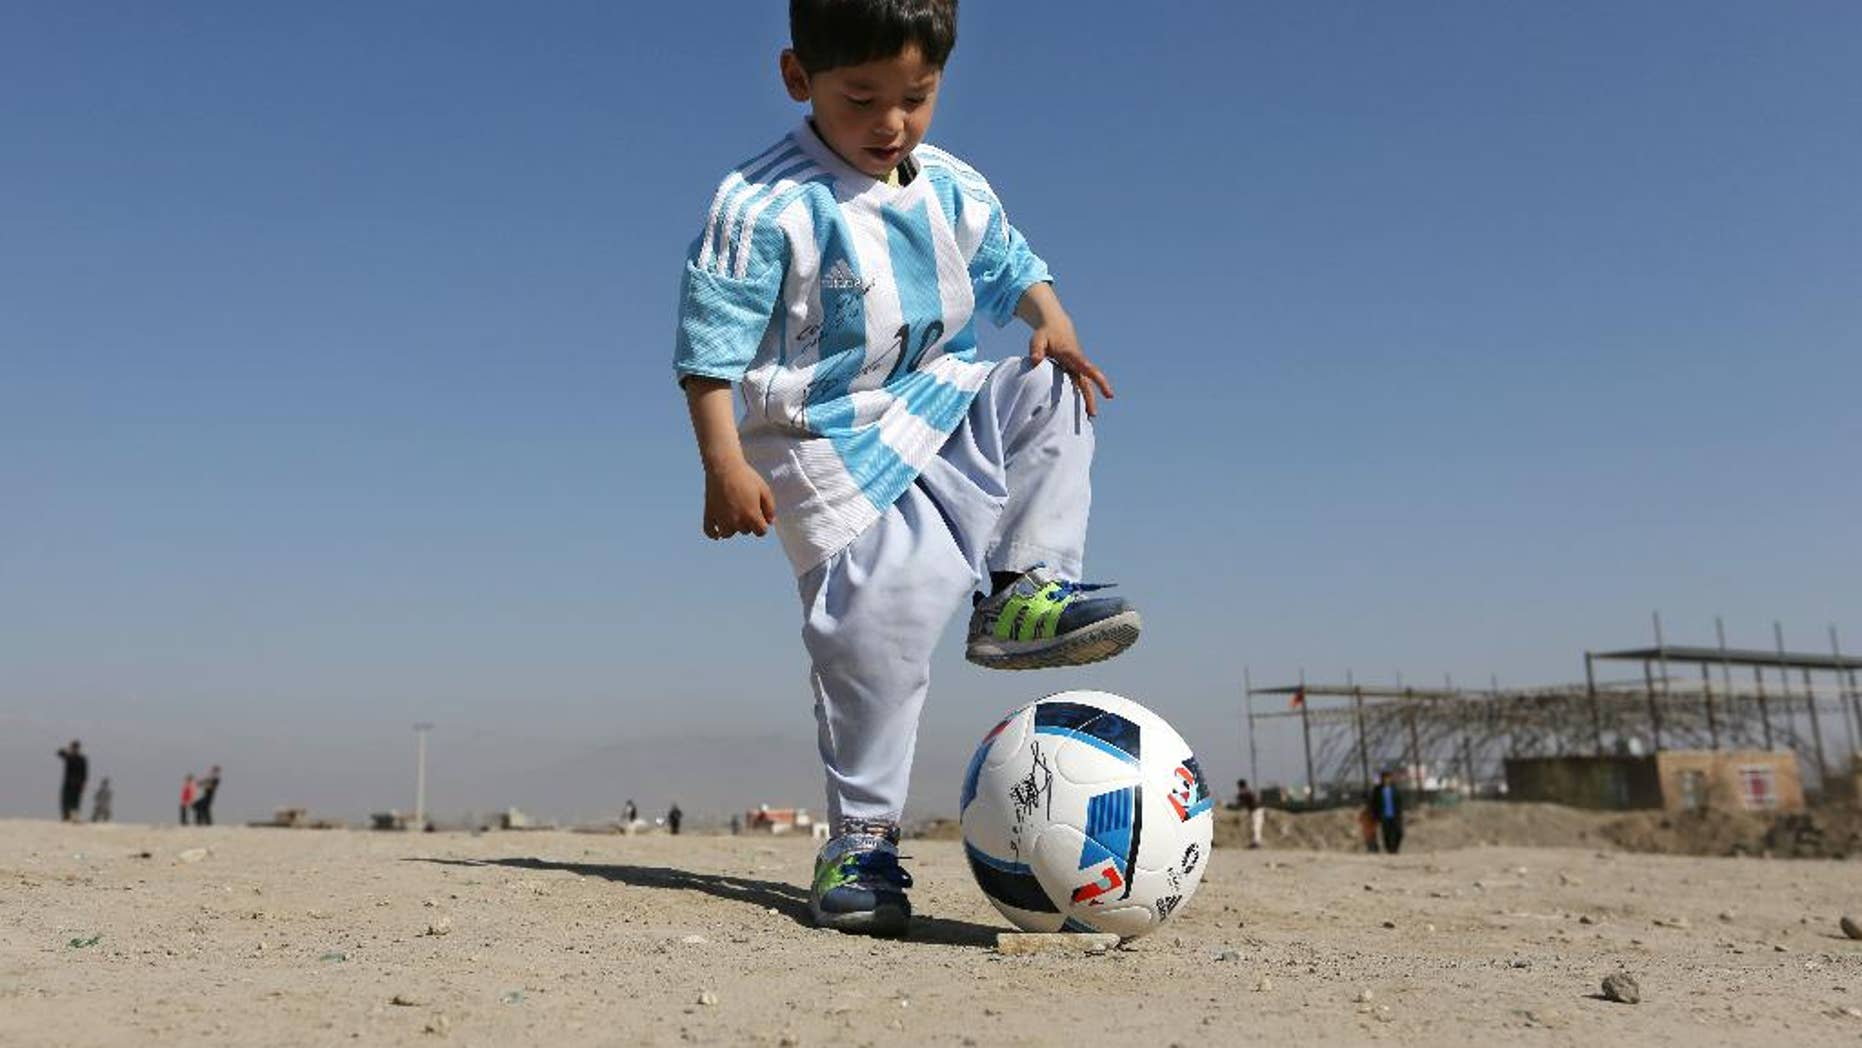 FILE - In this Friday, Feb. 26, 2016 file photo, Murtaza Ahmadi, a five-year-old Afghan Lionel Messi fan plays with a soccer ball during a photo opportunity as he wears a shirt signed by Messi, in Kabul, Afghanistan. The father of Ahmadi says the family was forced to leave Afghanistan amid constant telephone threats. (AP Photo/Rahmat Gul, File)